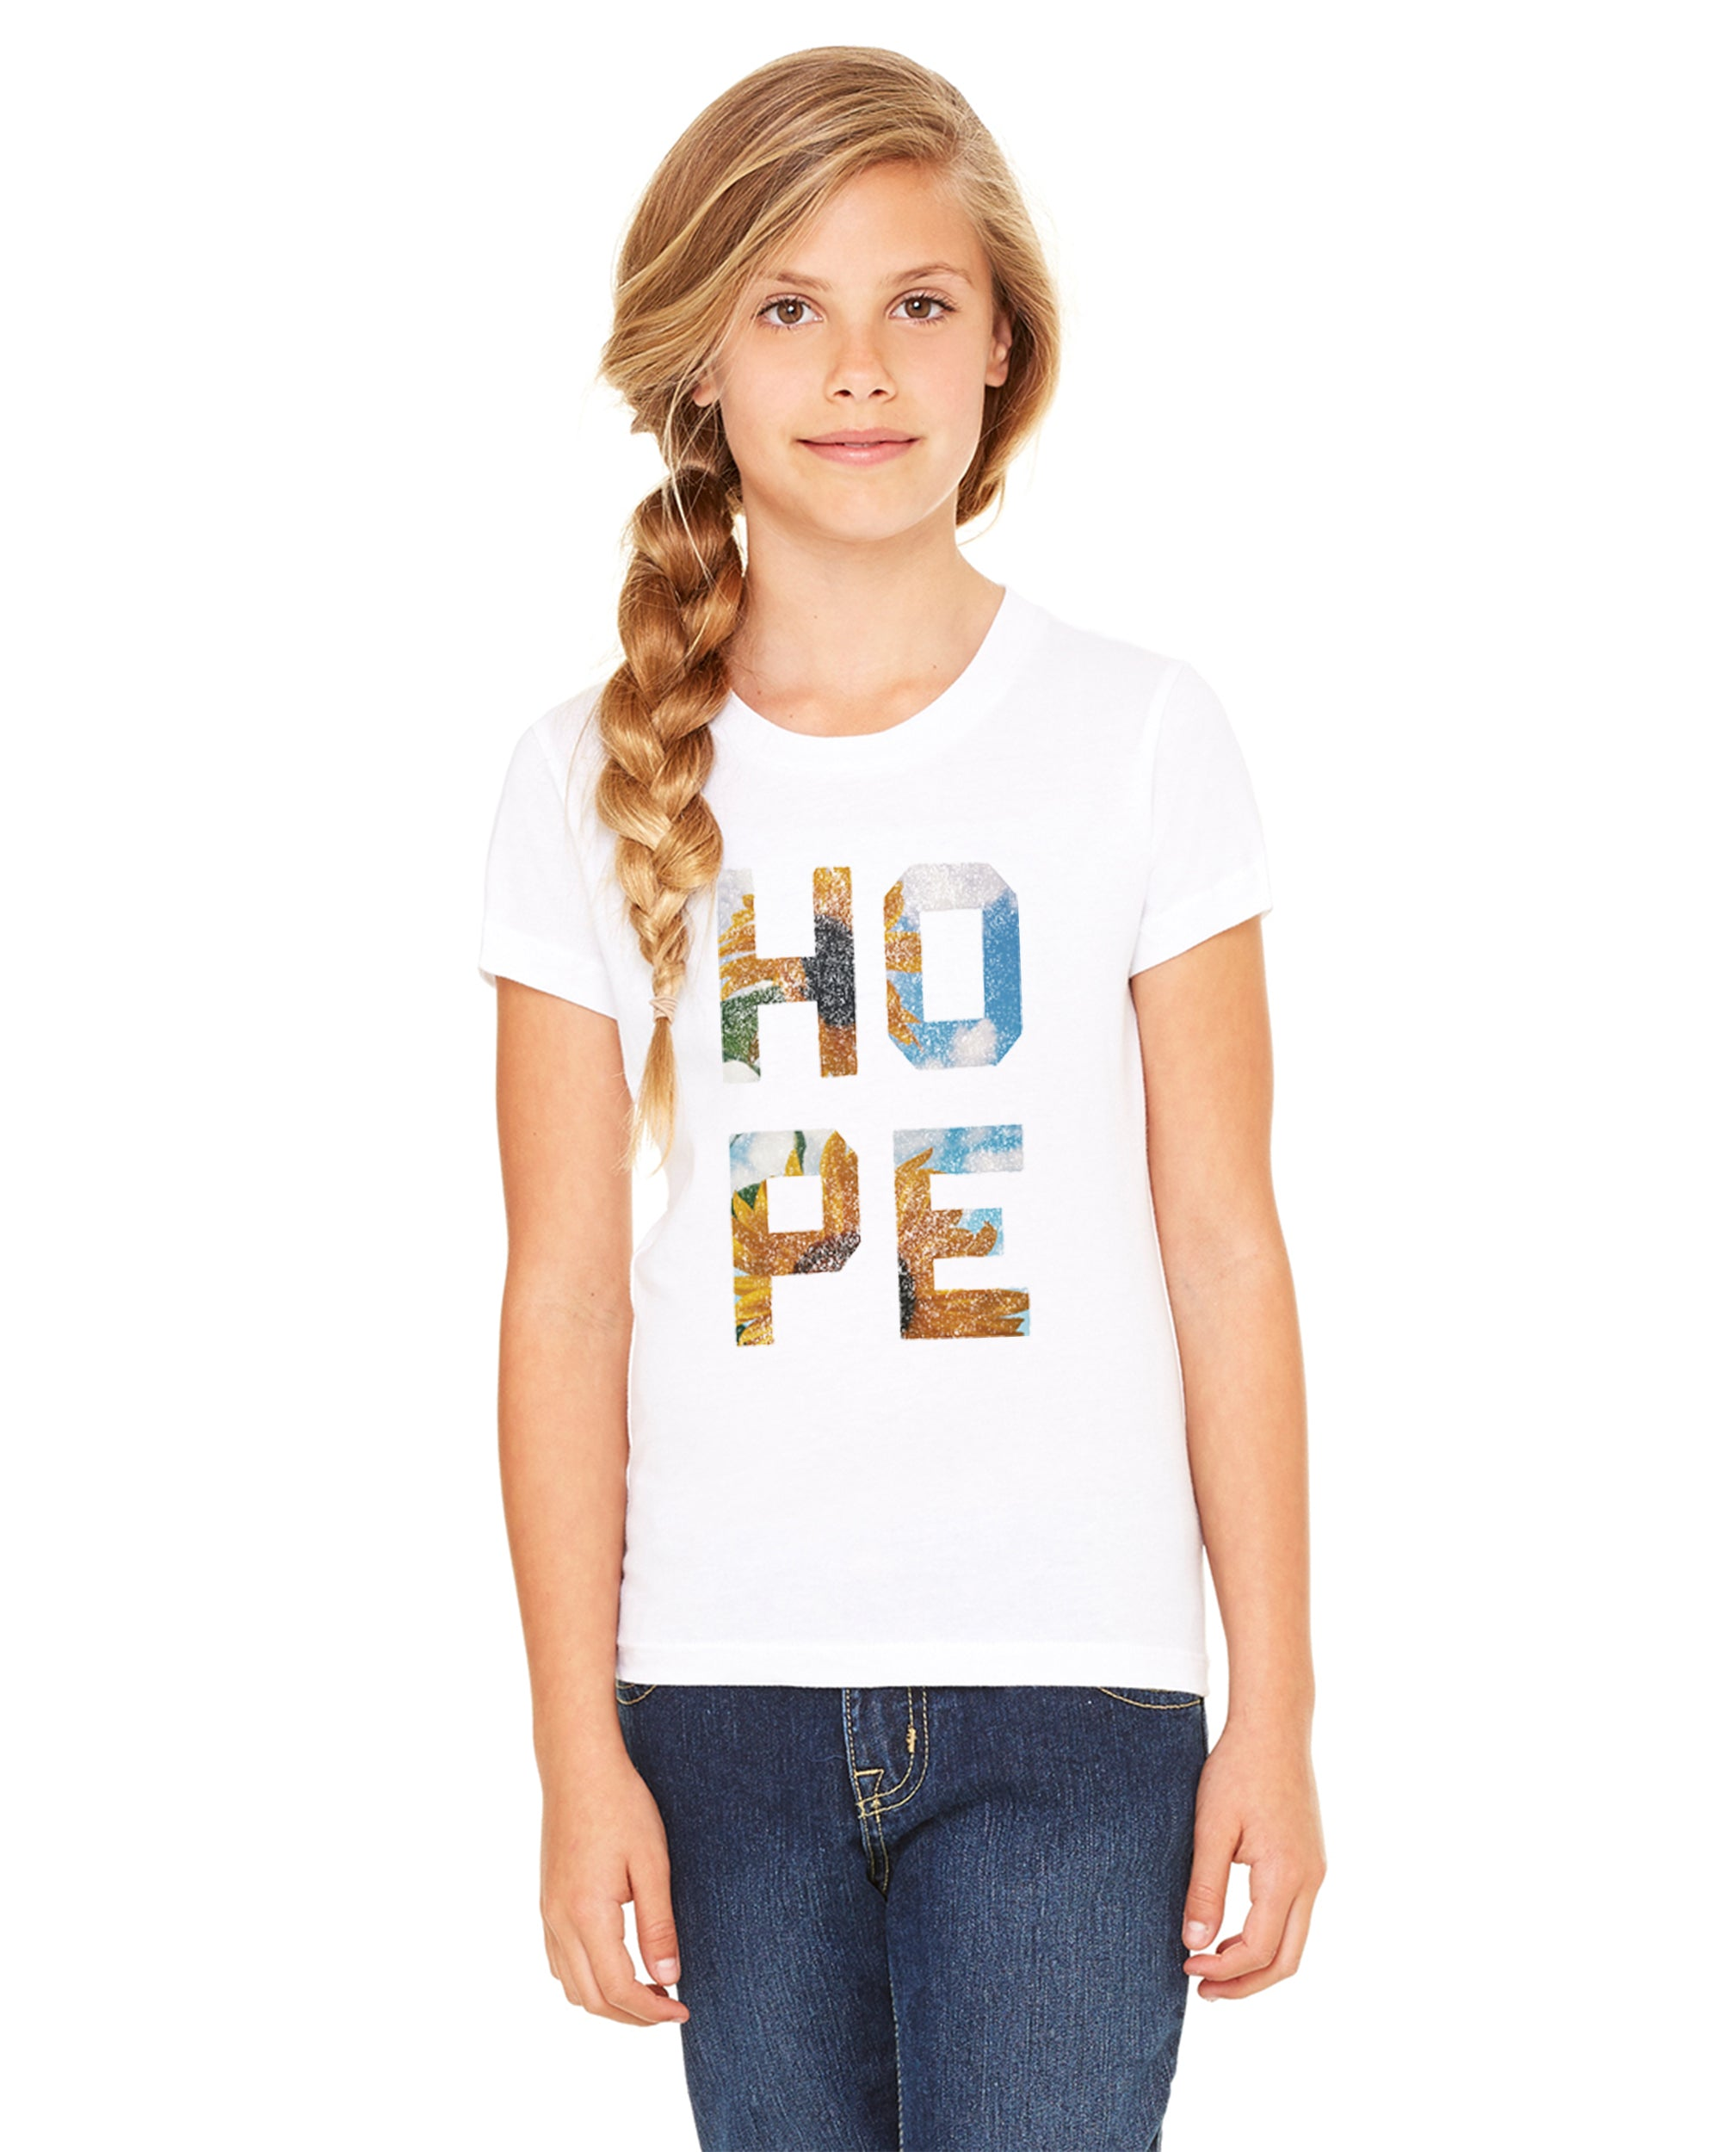 HOPE Floral Premium Classic Tee Made In The USA For The Family